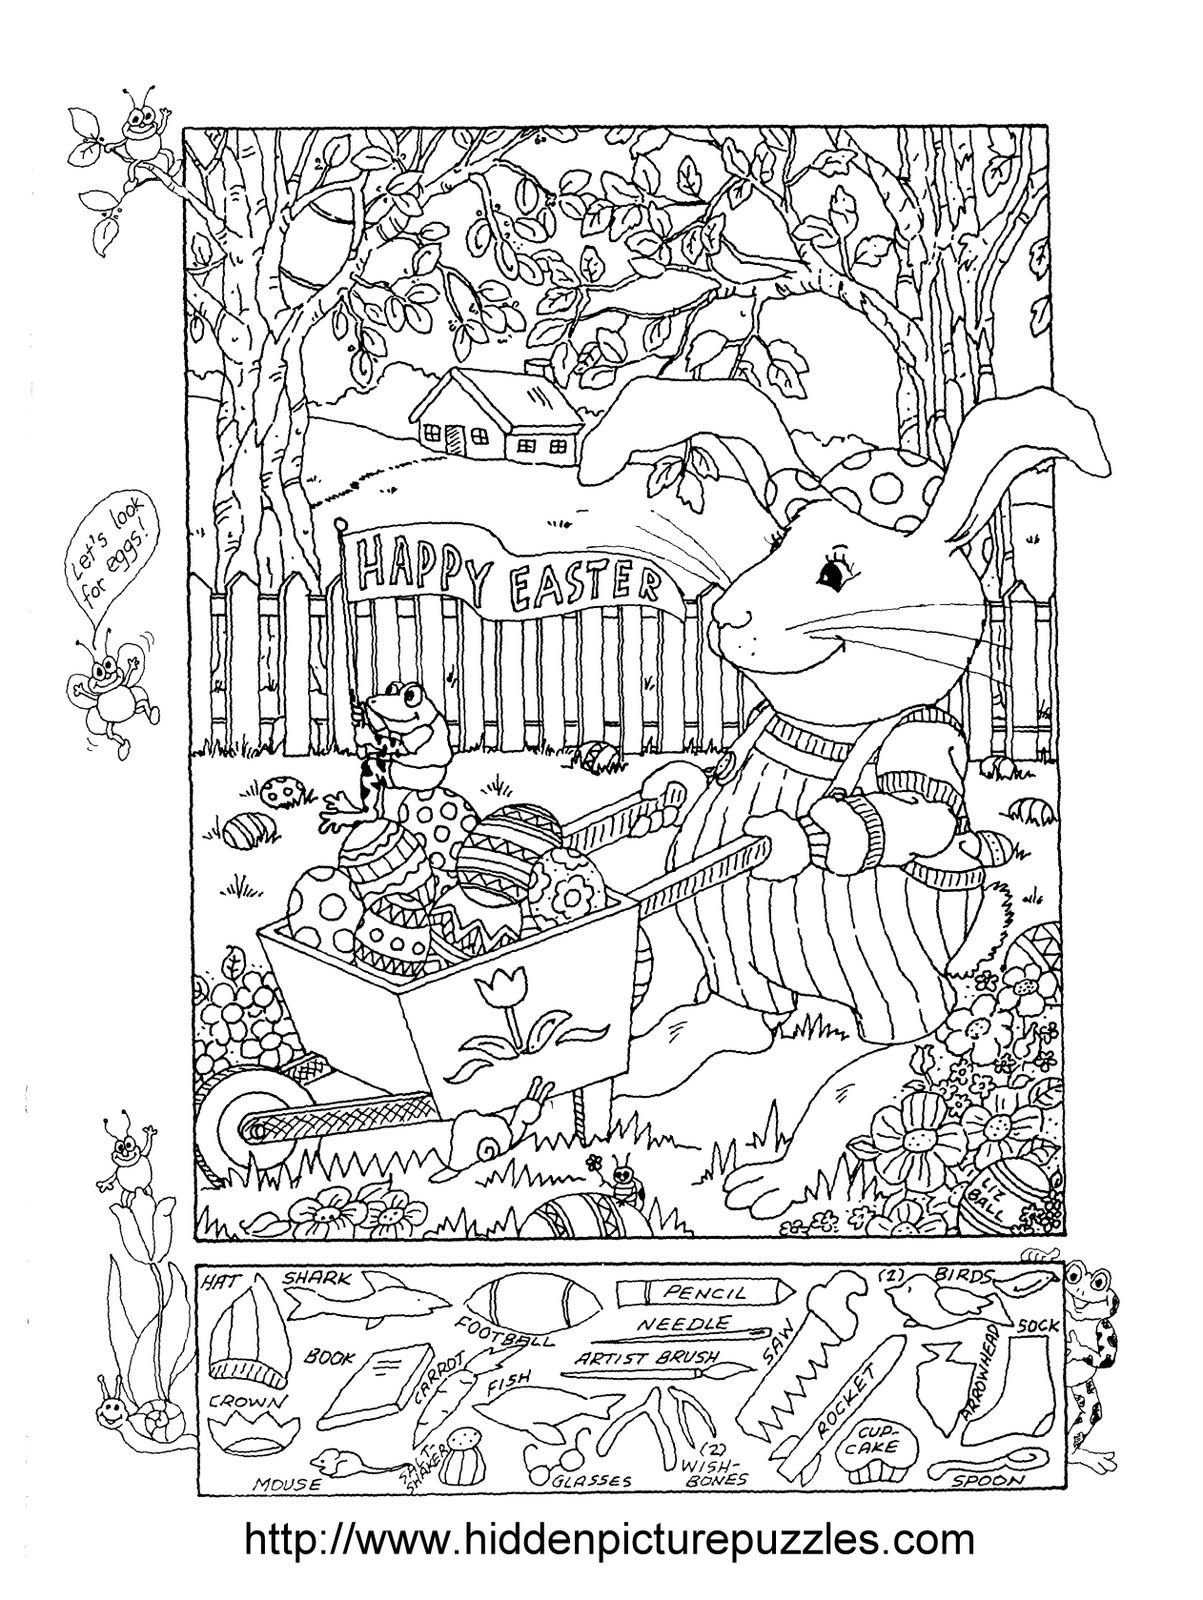 Activity village co uk christmas gifts coloring page - Hidden Pictures Publishing Easter Hidden Picture Puzzle And Coloring Page